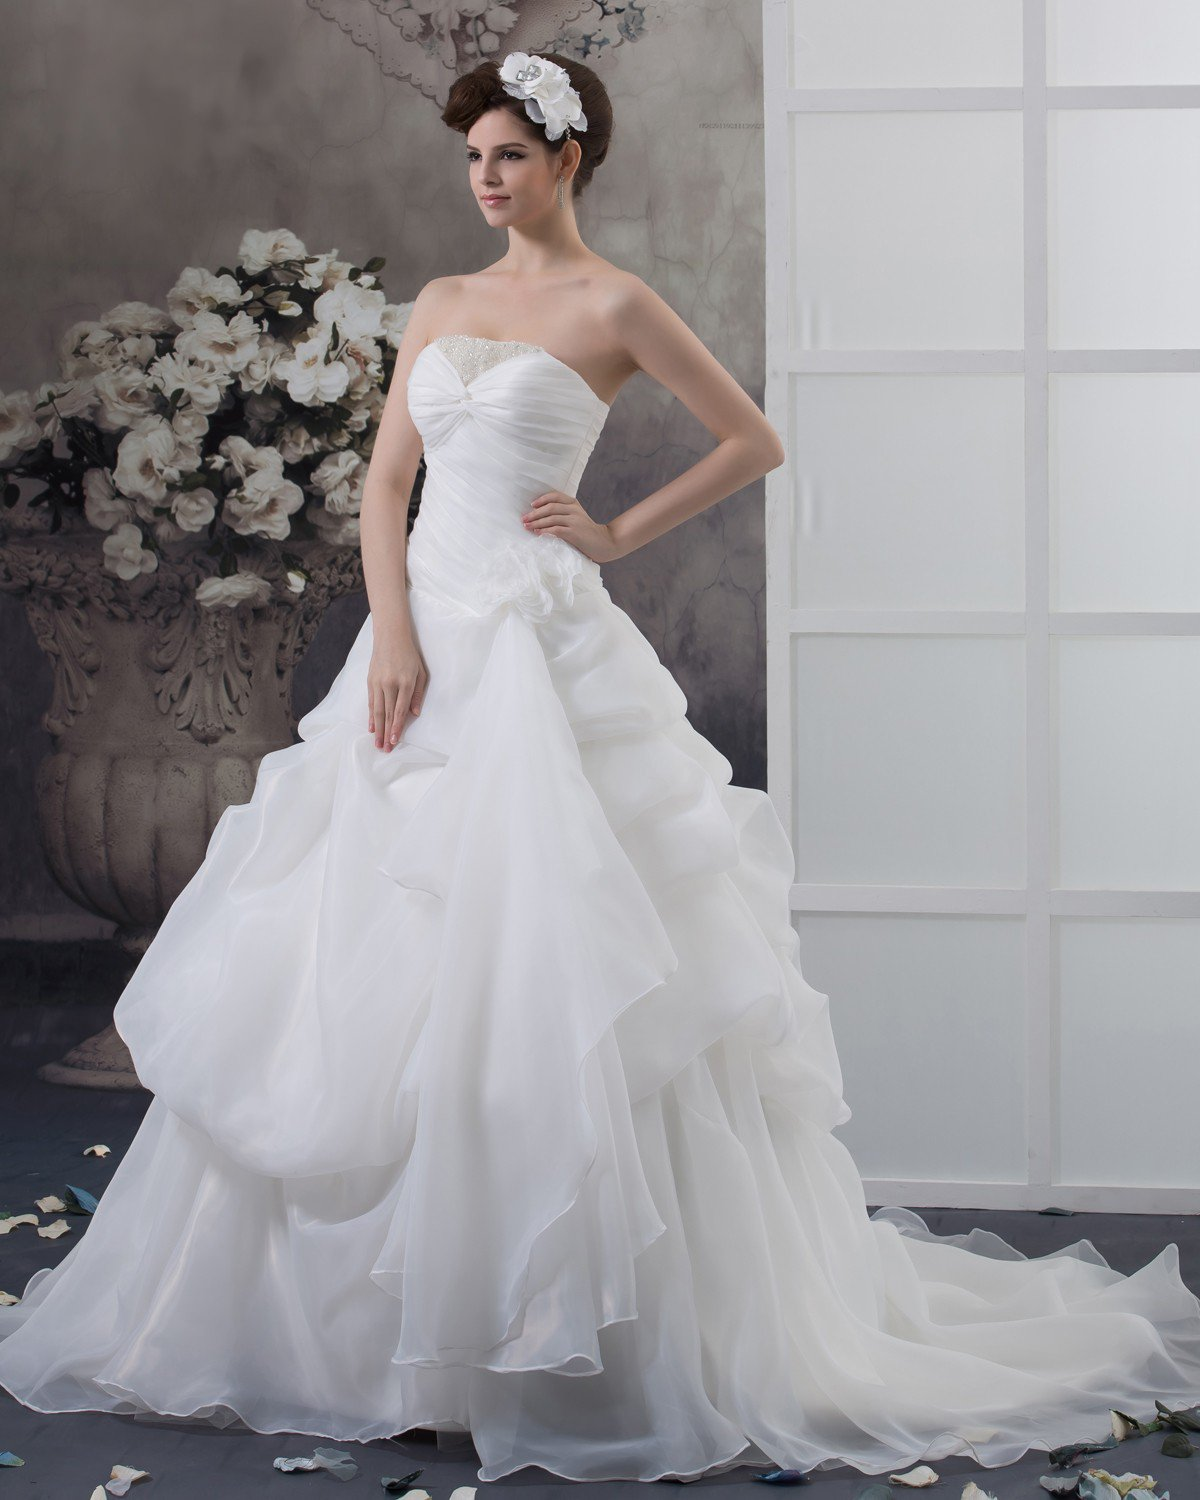 Satin Beading Ruffles Strapless Chapel A-Line Bridal Gown Wedding Dresses